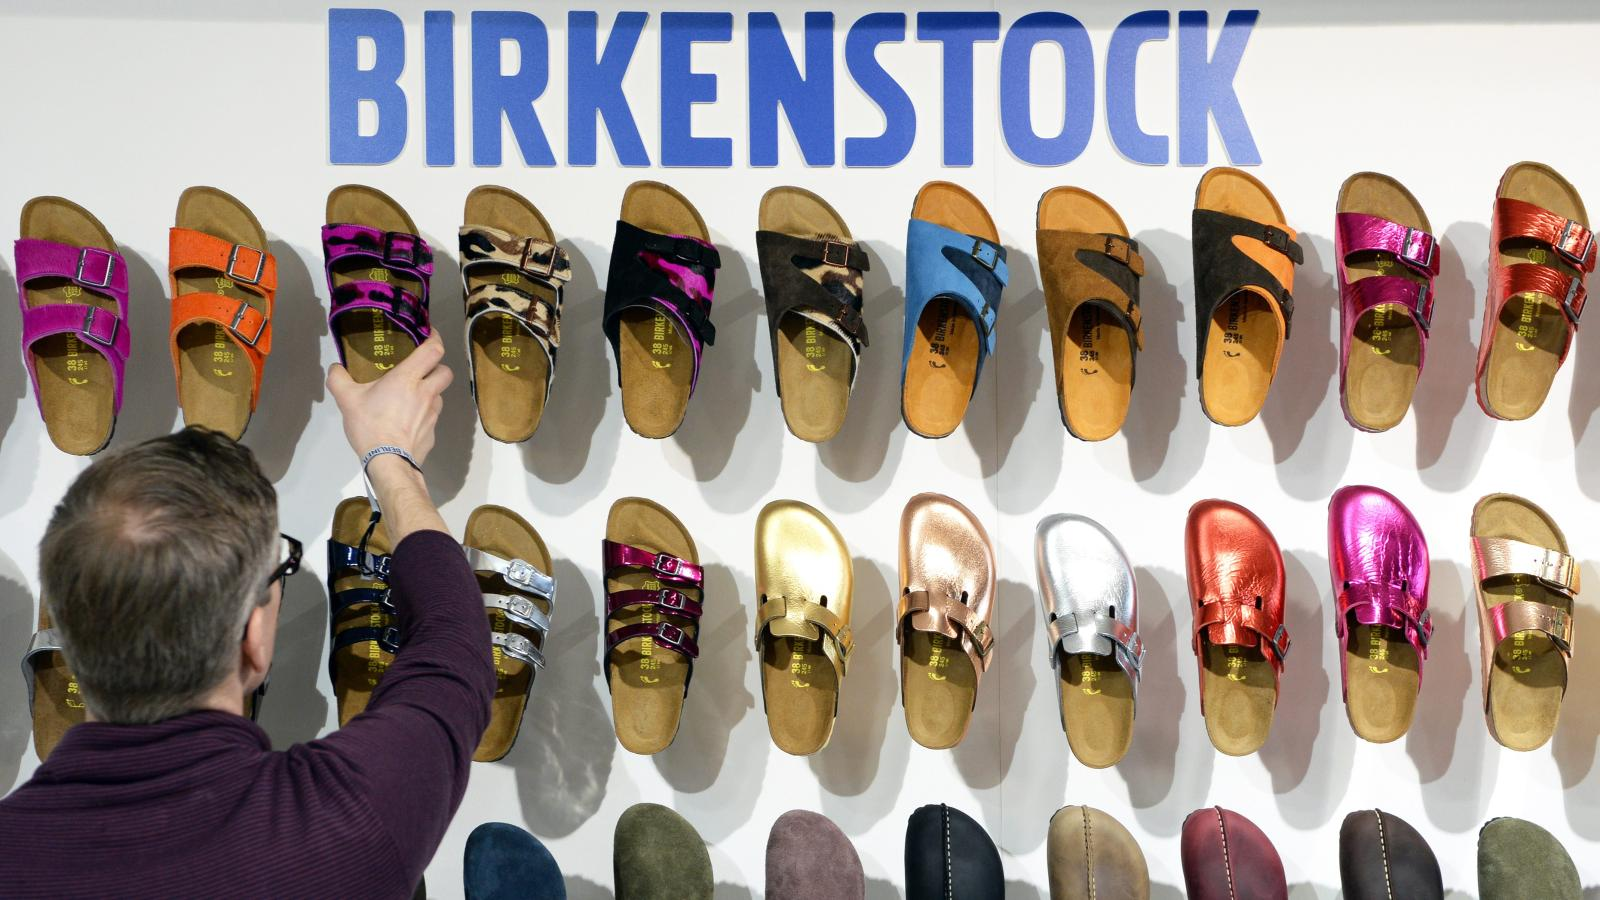 d0dedc9d80b7 Birkenstock is taking a last stand for brand control in the age of Amazon